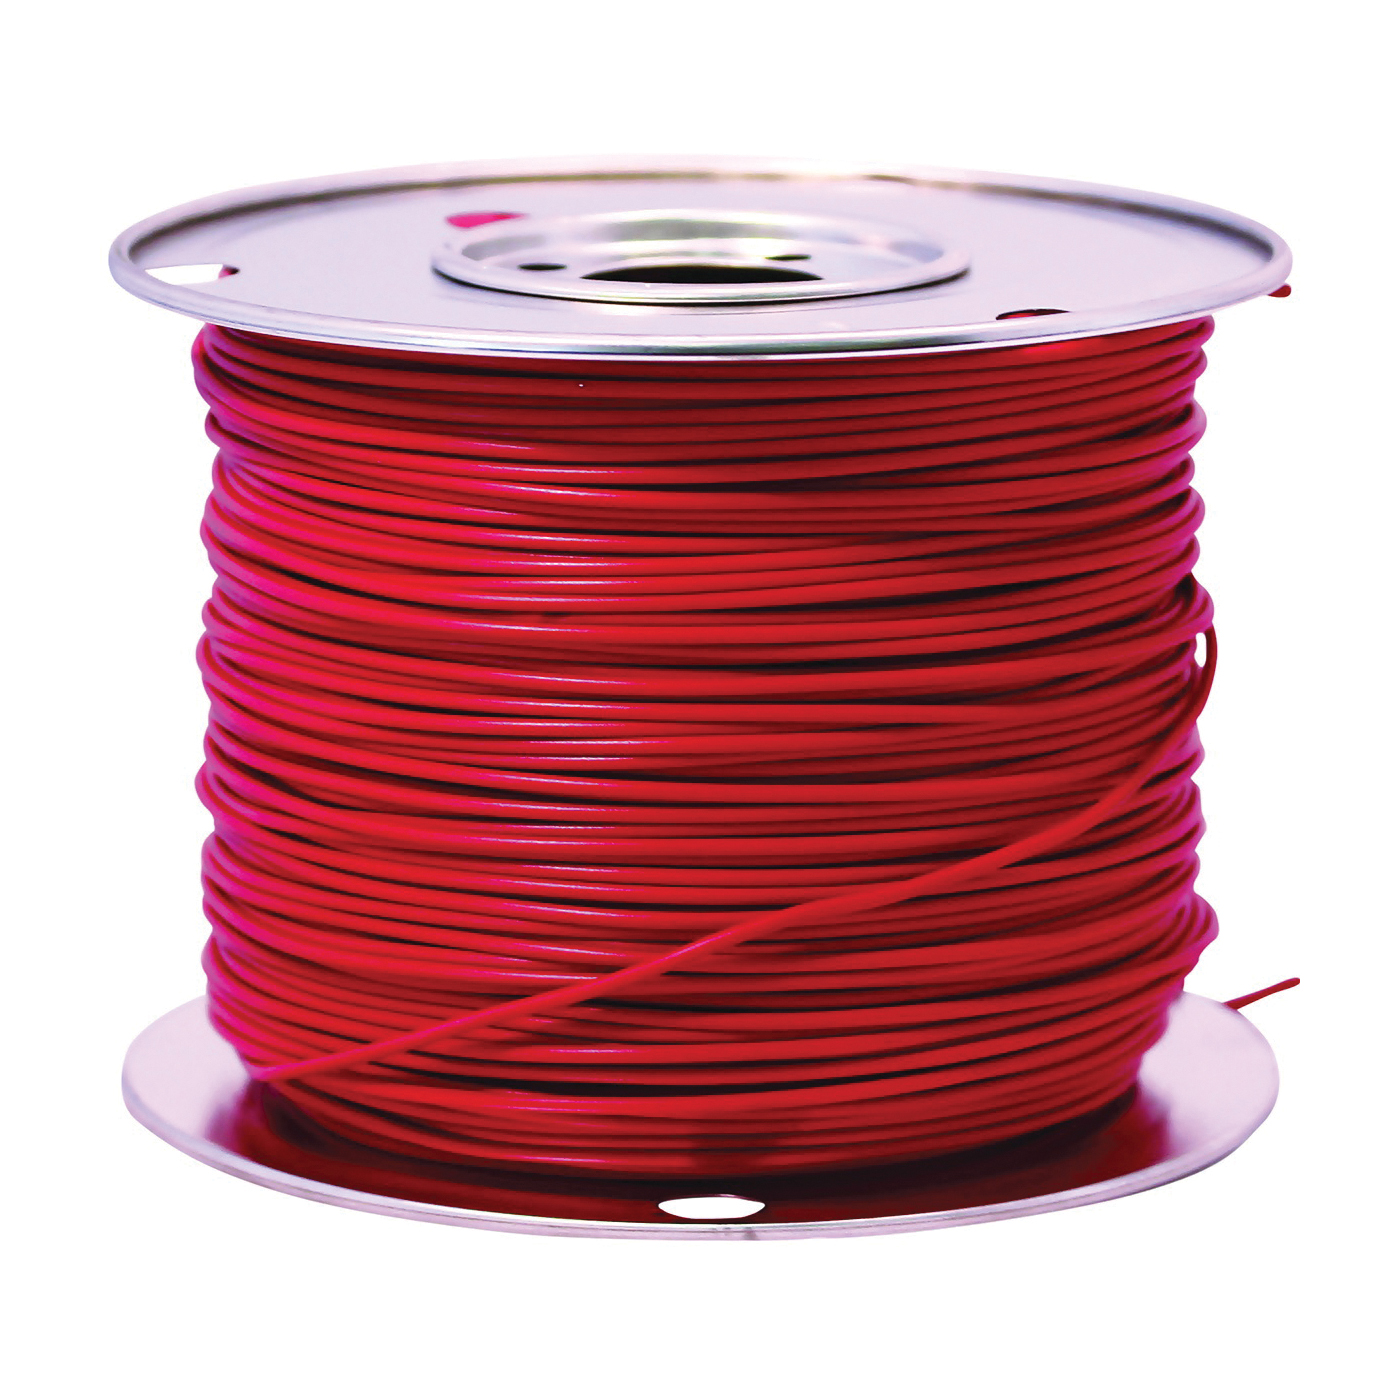 Picture of CCI 55669123 Primary Wire, 14 AWG Wire, 1 -Conductor, 60 VDC, Copper Conductor, Red Sheath